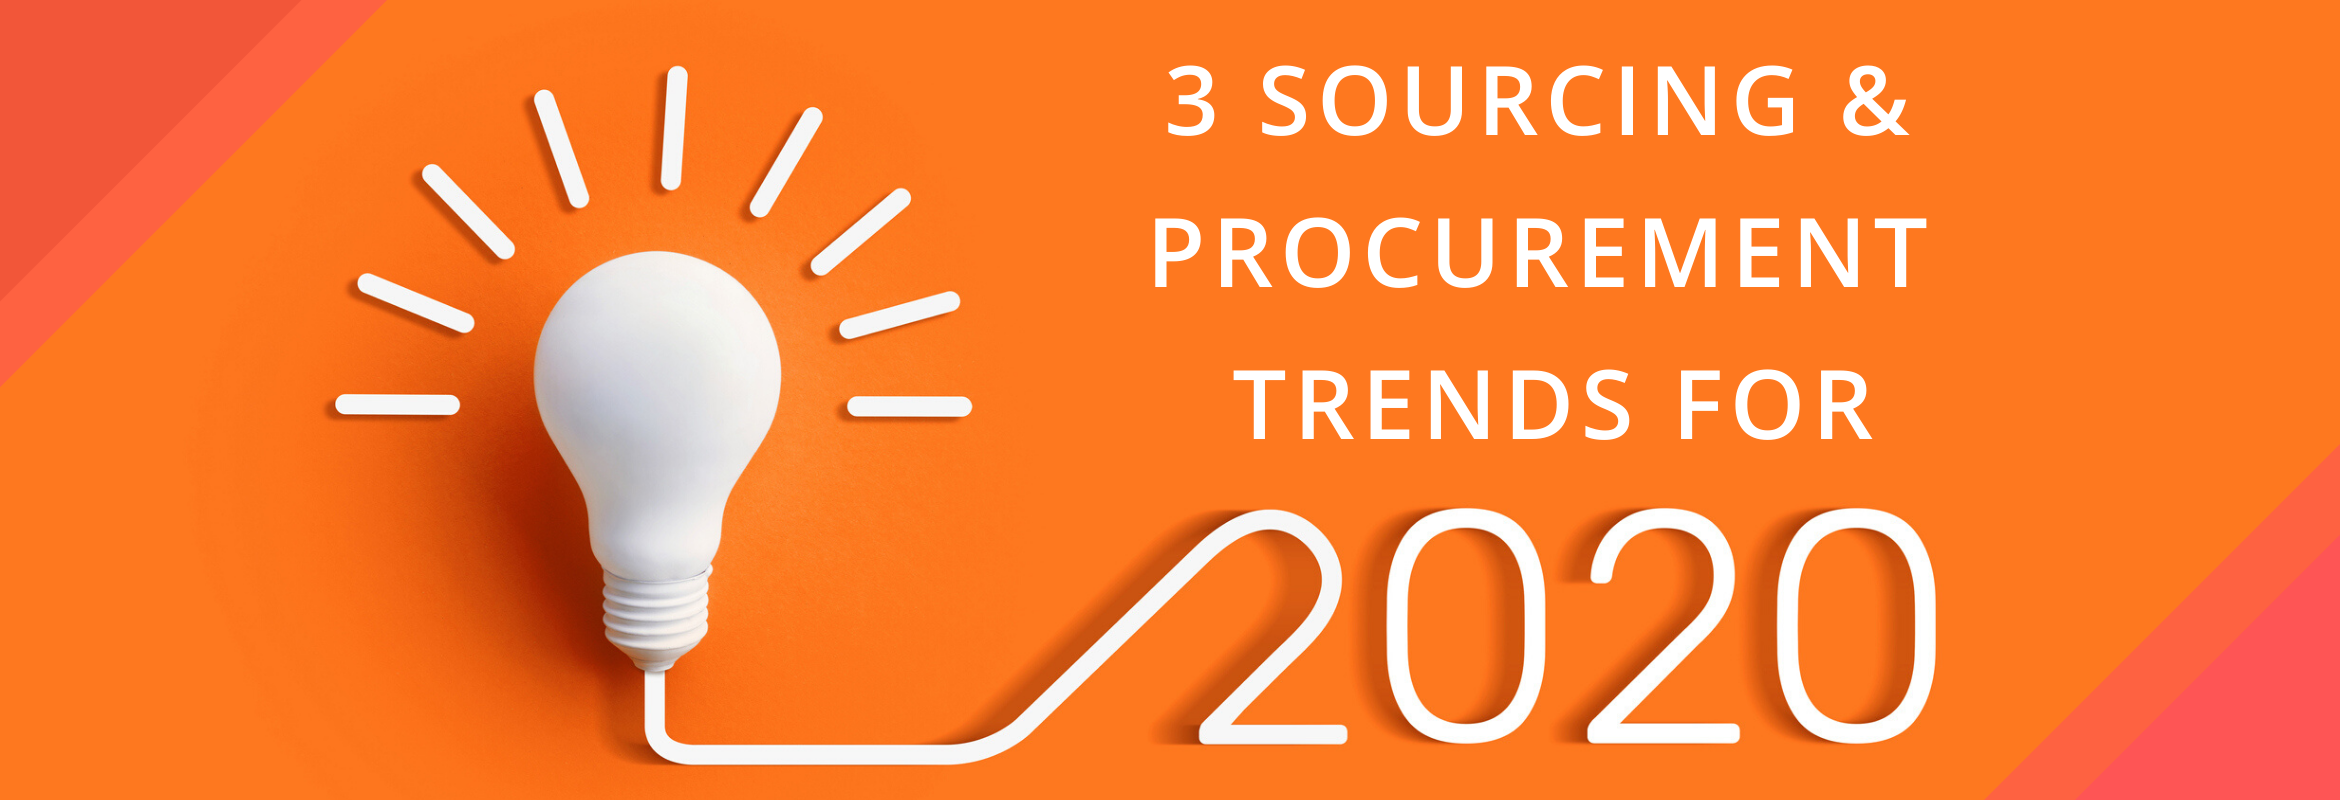 SIG's CEO and President Dawn Tiura shares her thoughts on the sourcing and procurement trends that she predicts will move the needle for our profession in the next year.